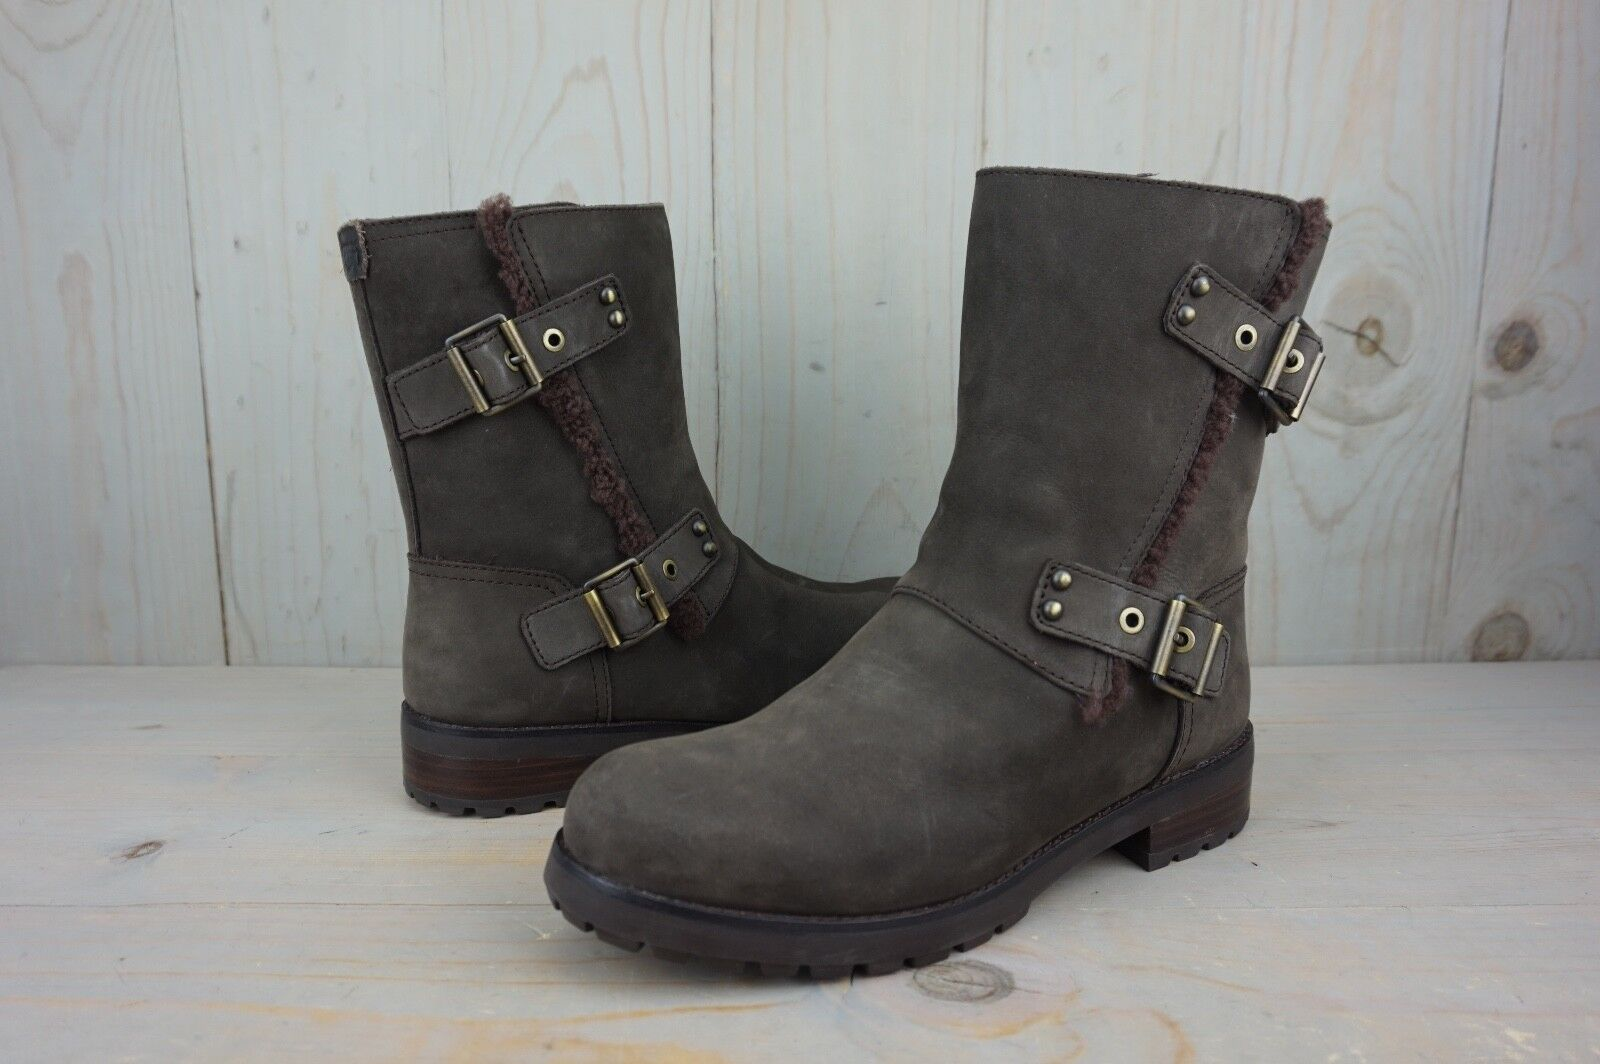 81f5bc6ba33 UGG Niels 1019073 Black Leather Water Resistant Moto BOOTS Womens US 8